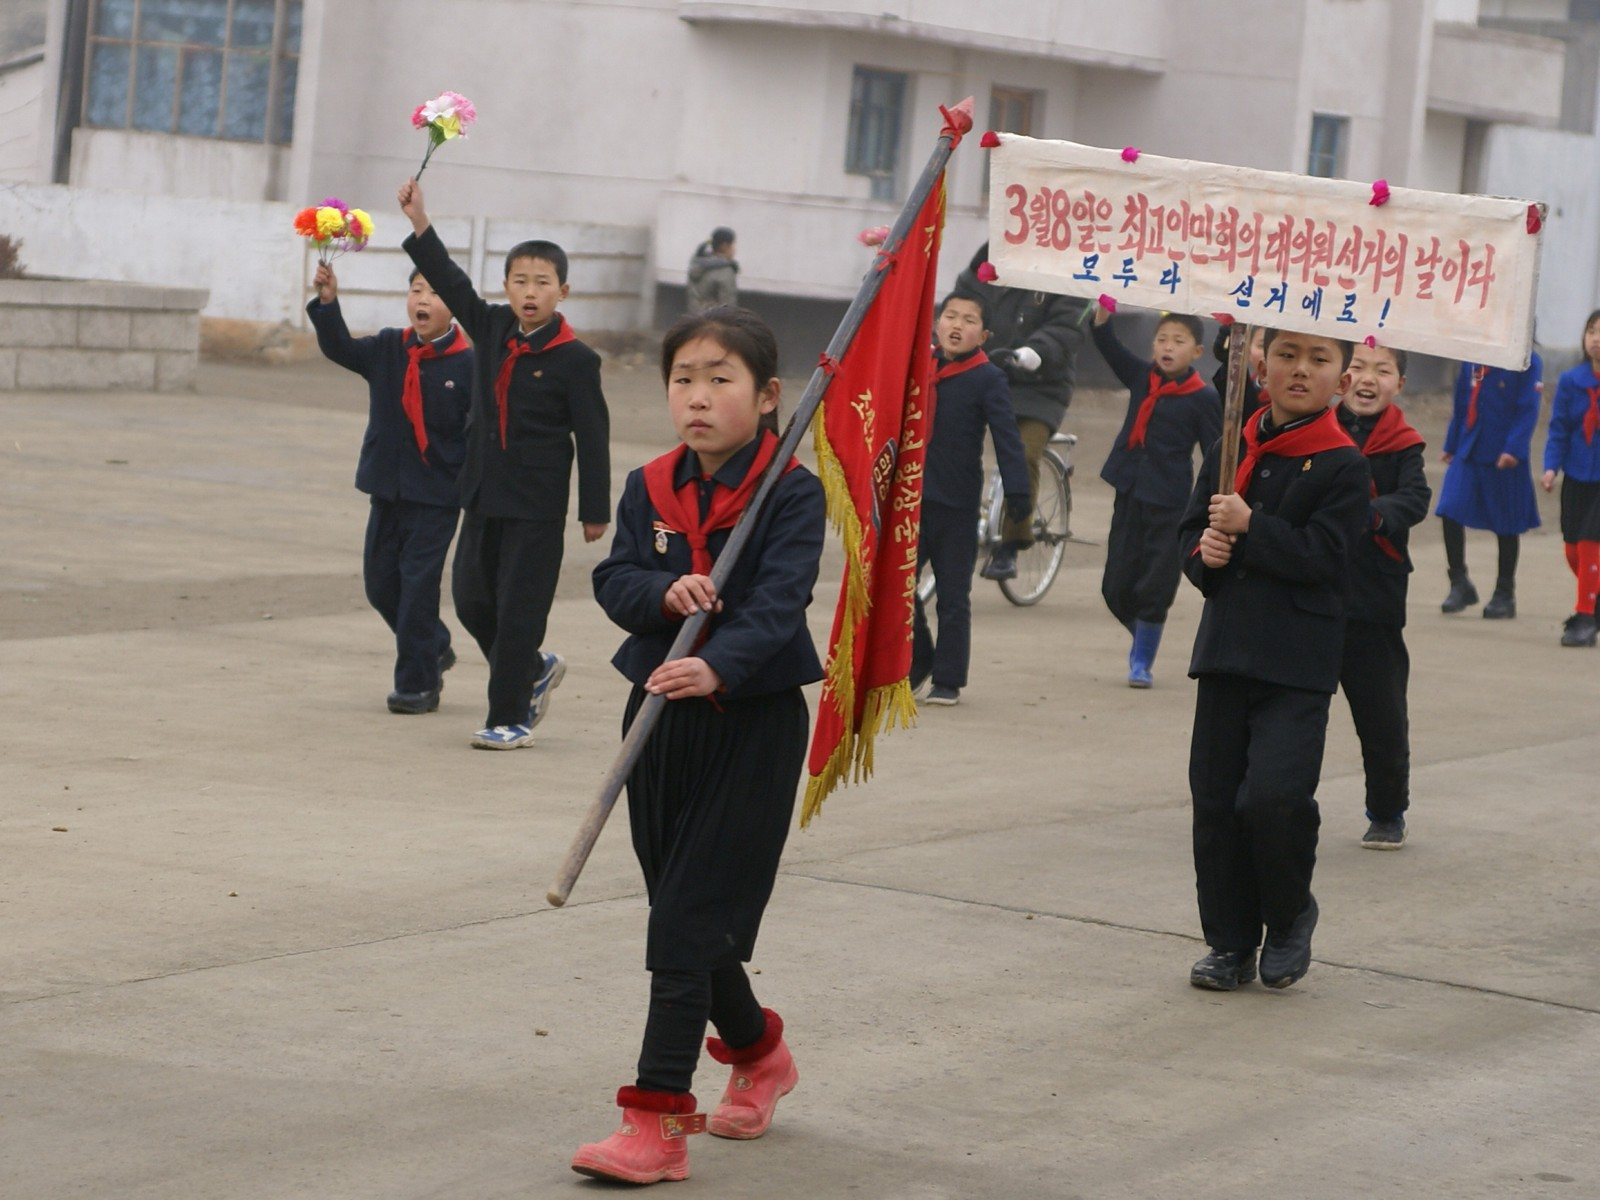 Election campaign, DPRK style